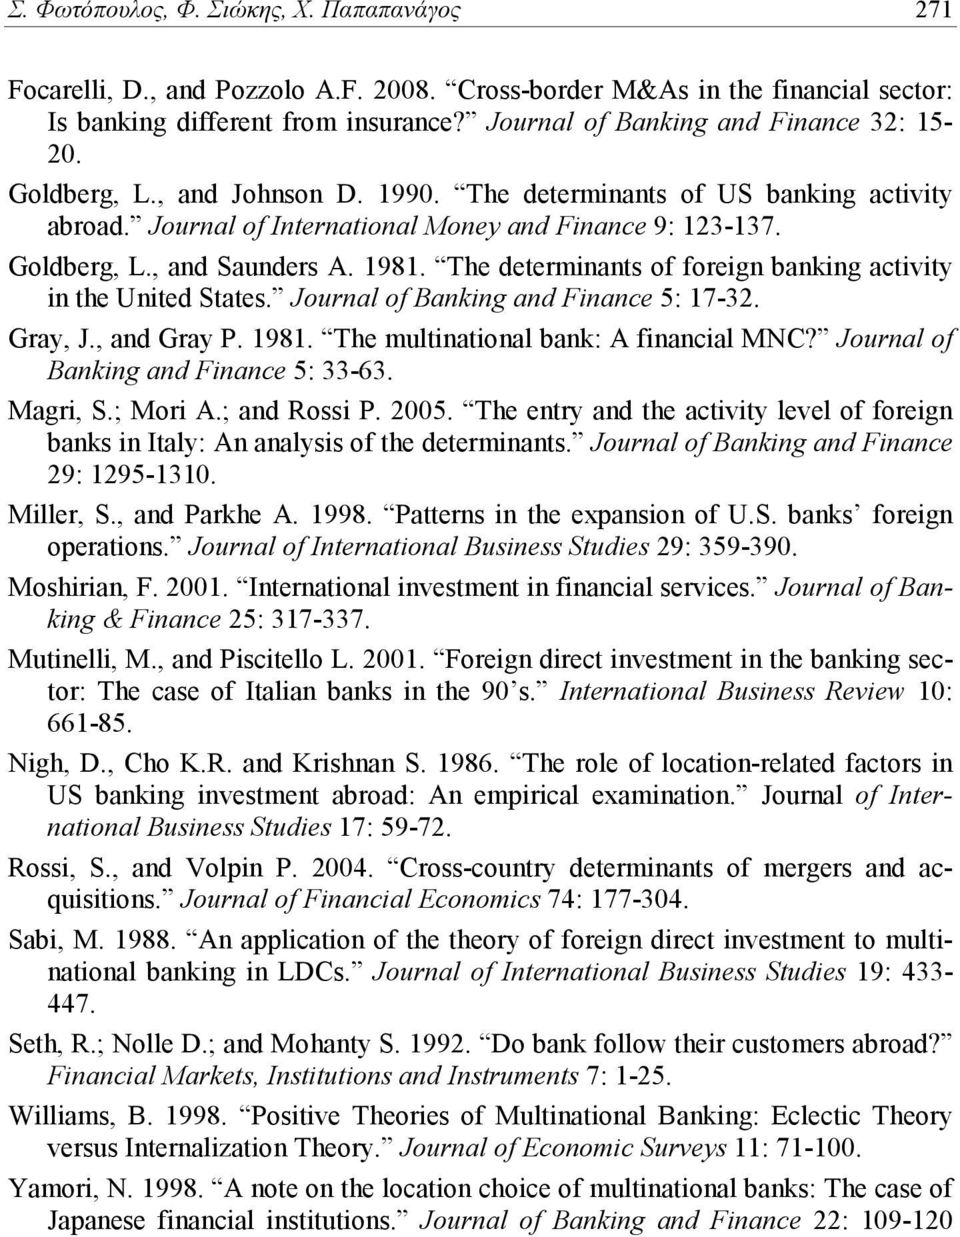 1981. The determinants of foreign banking activity in the United States. Journal of Banking and Finance 5: 17-32. Gray, J., and Gray P. 1981. The multinational bank: A financial MNC?